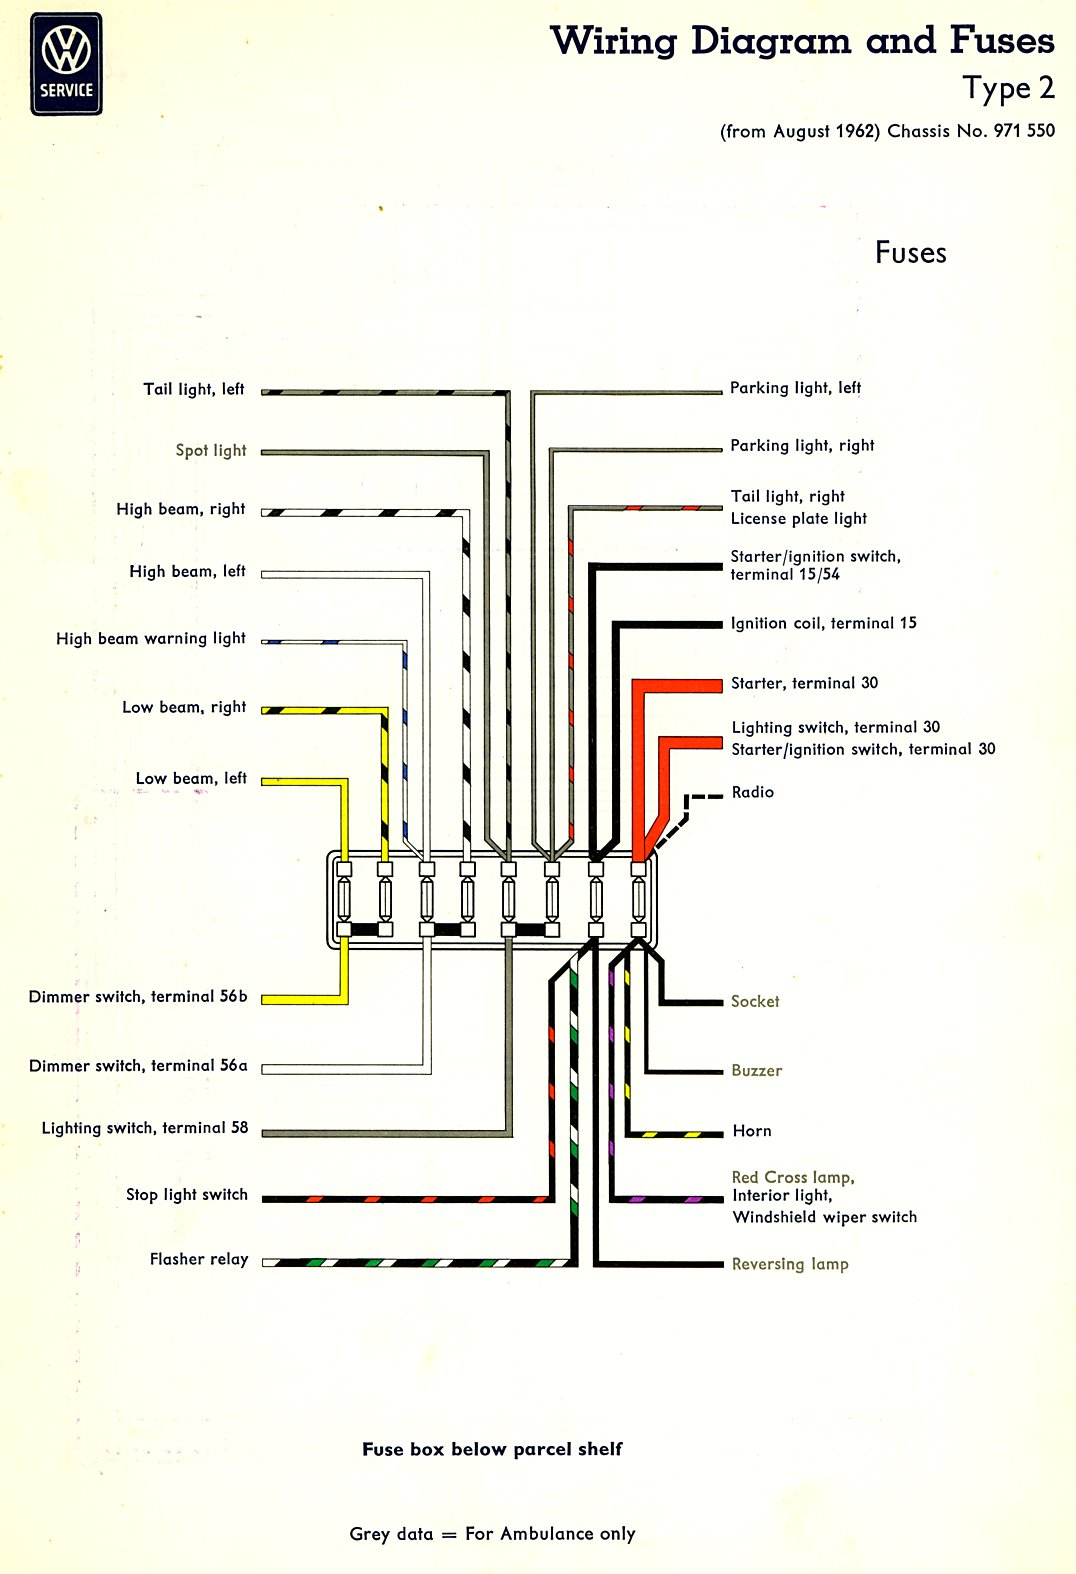 bus_63_fuses thesamba com type 2 wiring diagrams 1979 bronco fuse box diagram at honlapkeszites.co